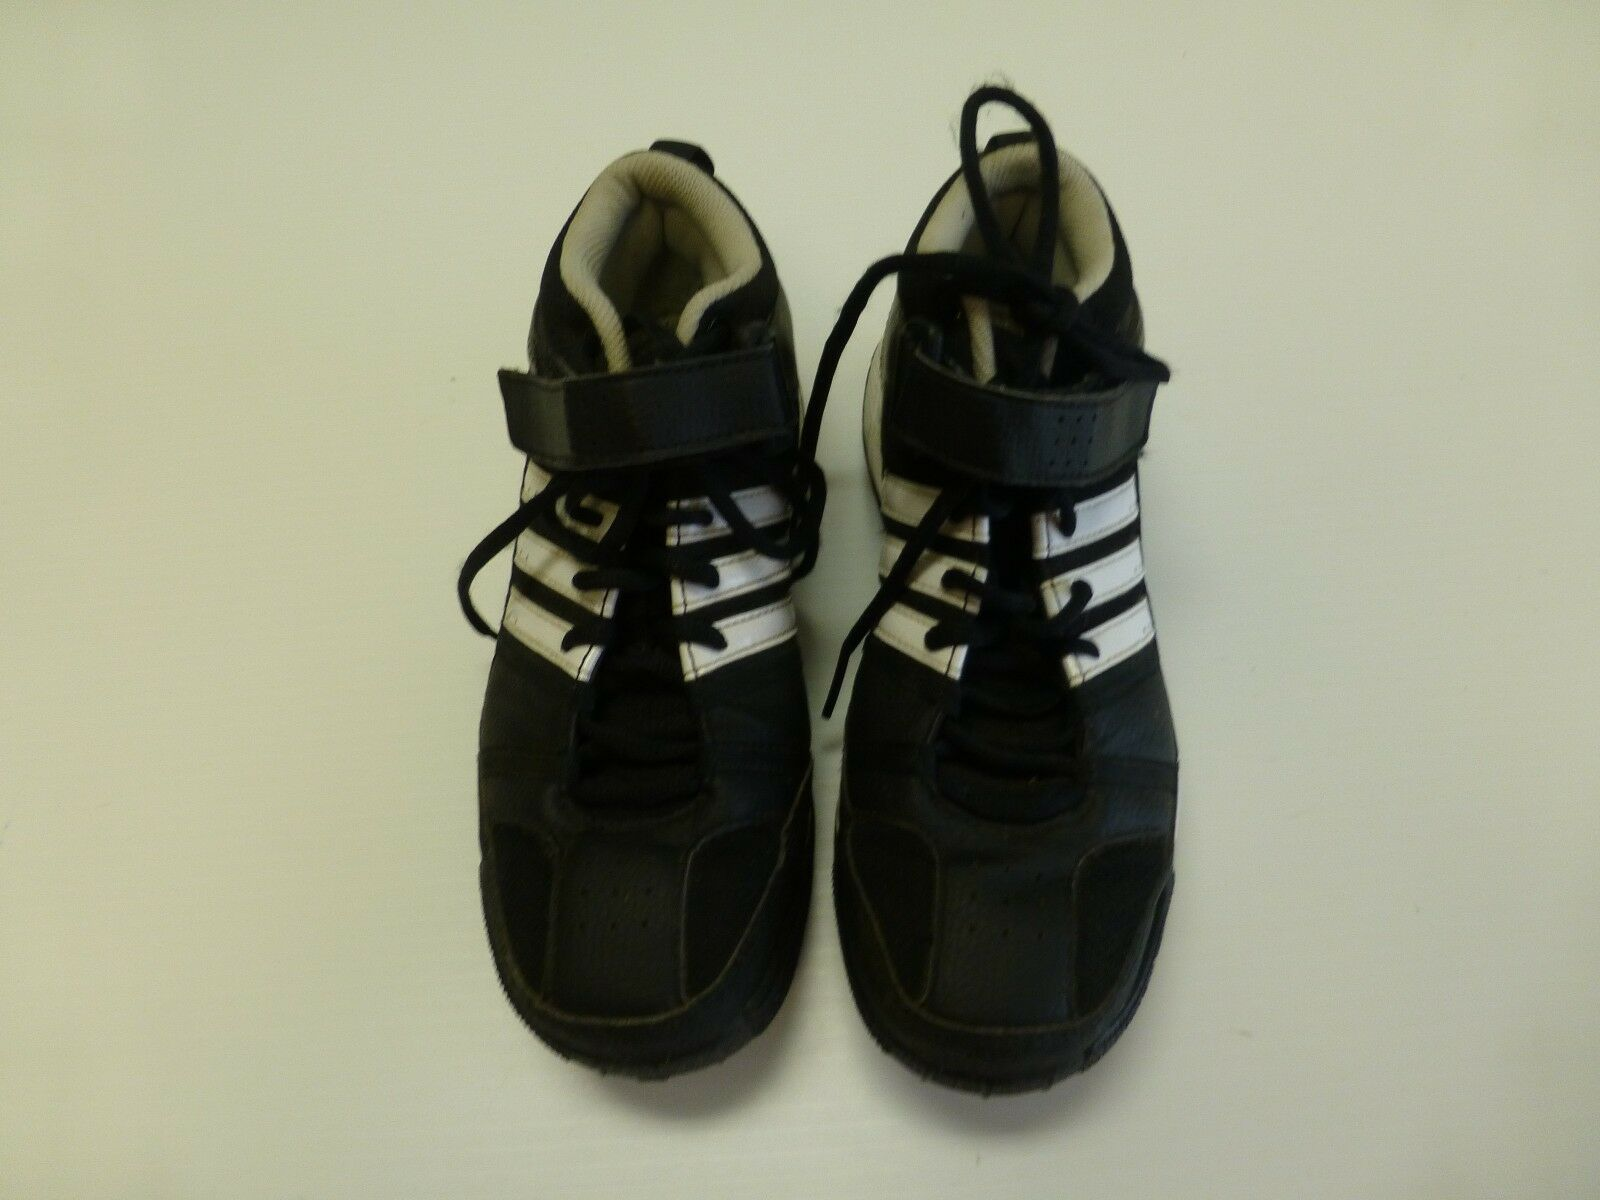 Adidas Mens 6 Black and White Tie with Hook and Black Loop Athletic Shoes Great Condition 84705e